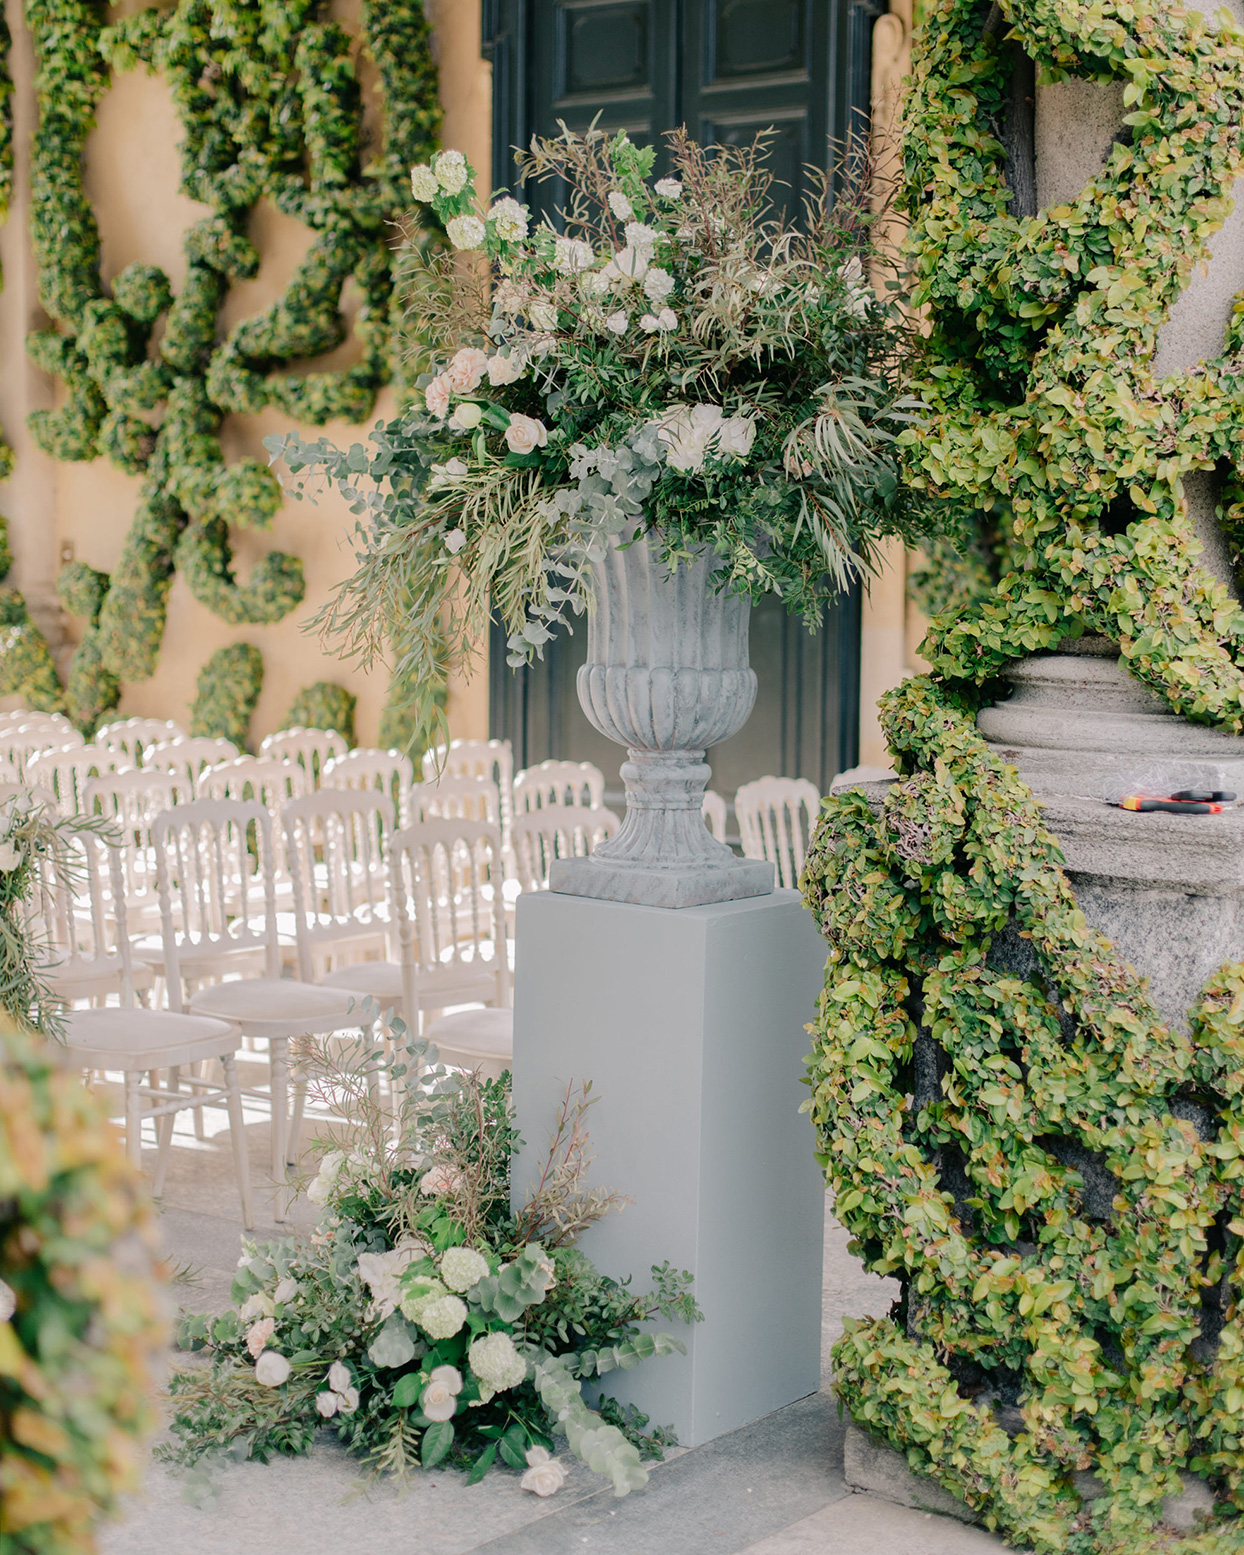 kiira arthur wedding ceremony space with large floral and greenery bouquets